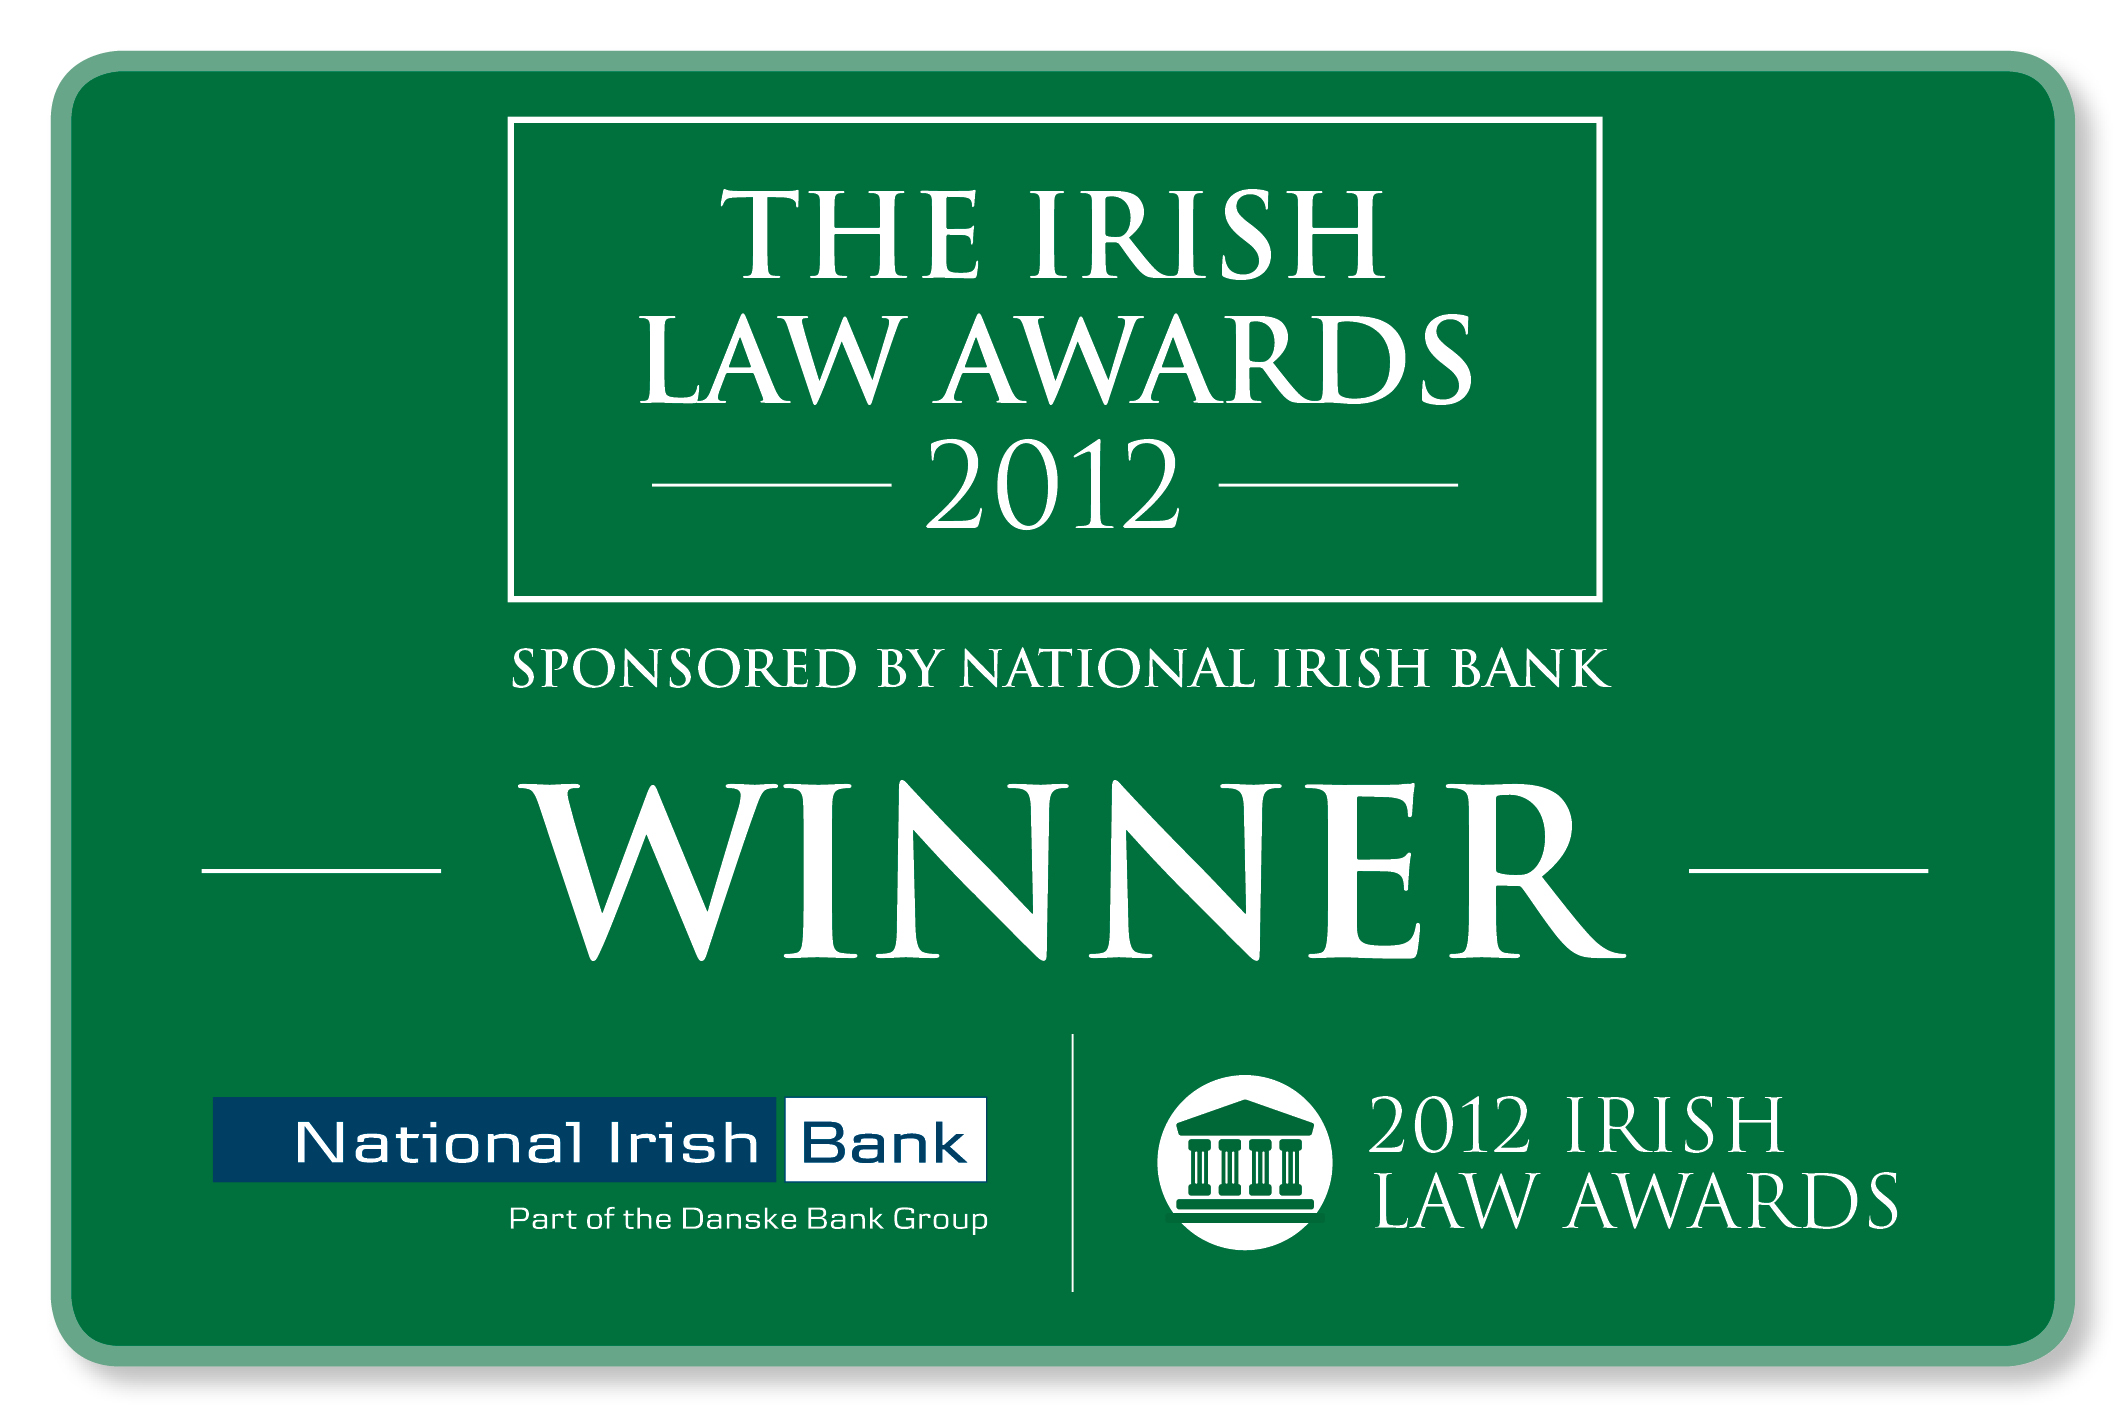 Irish Law Award Winner